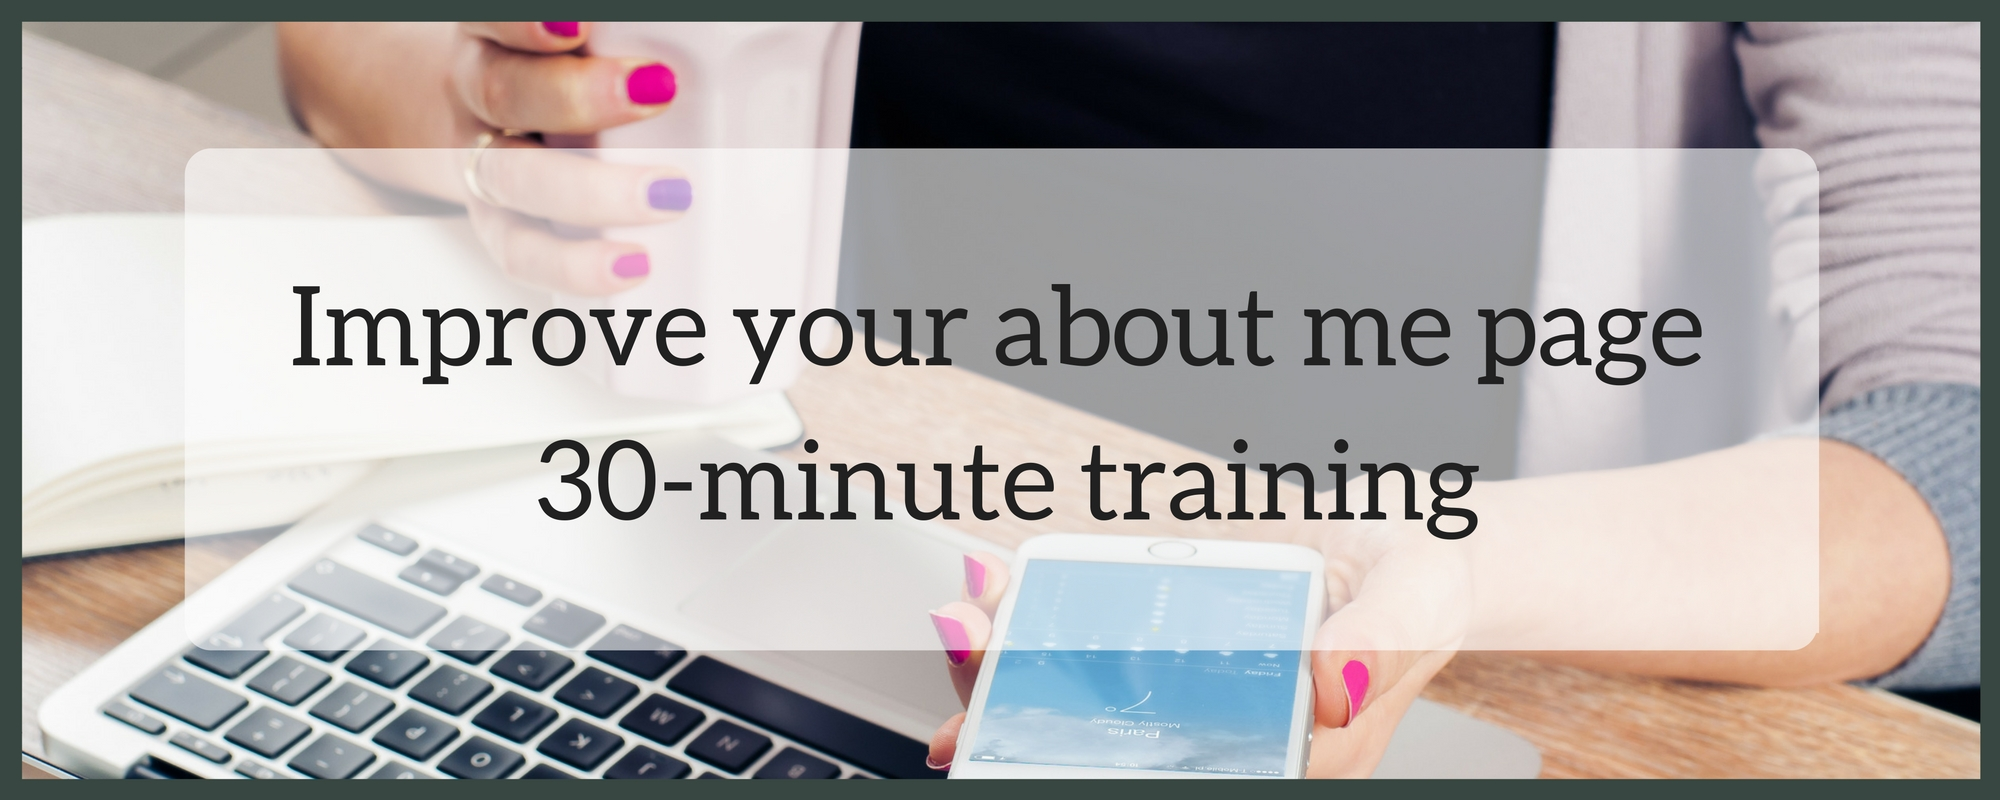 Improve your about me page 30 minute training page header.jpg